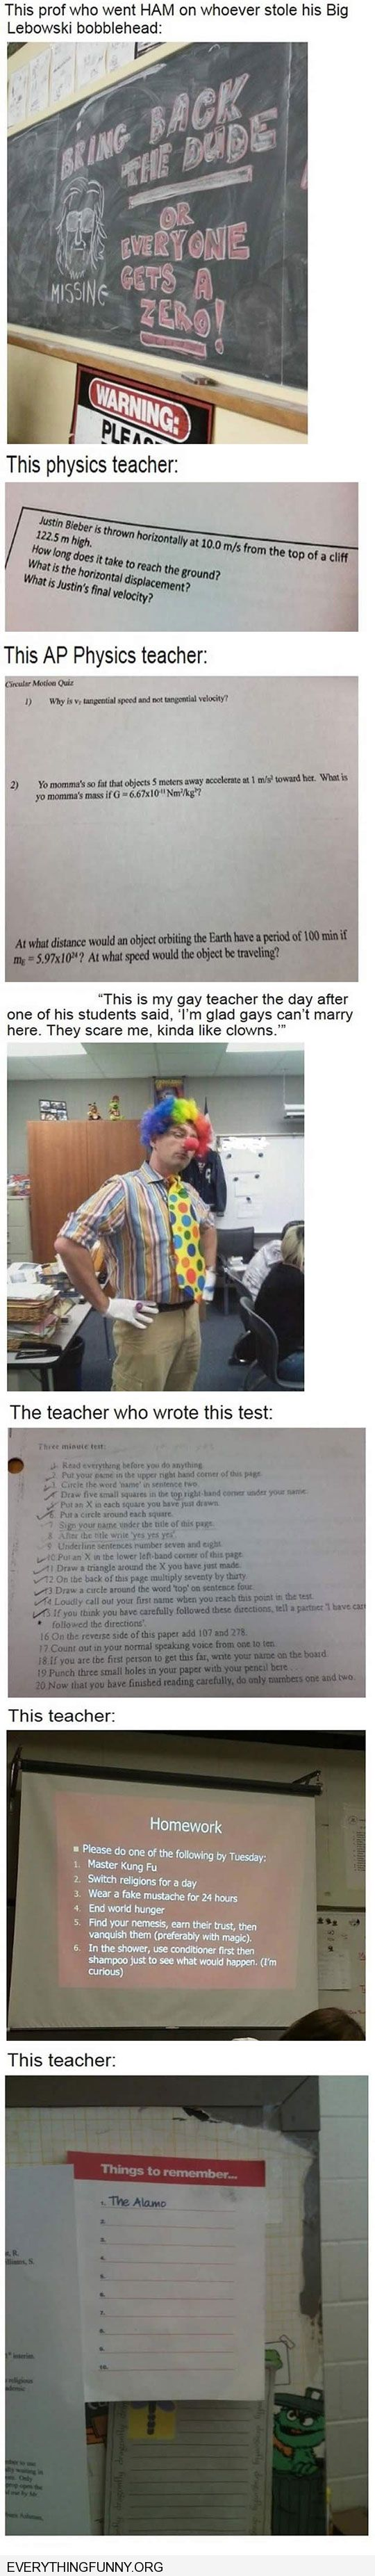 funny captions the coolest teachers ever